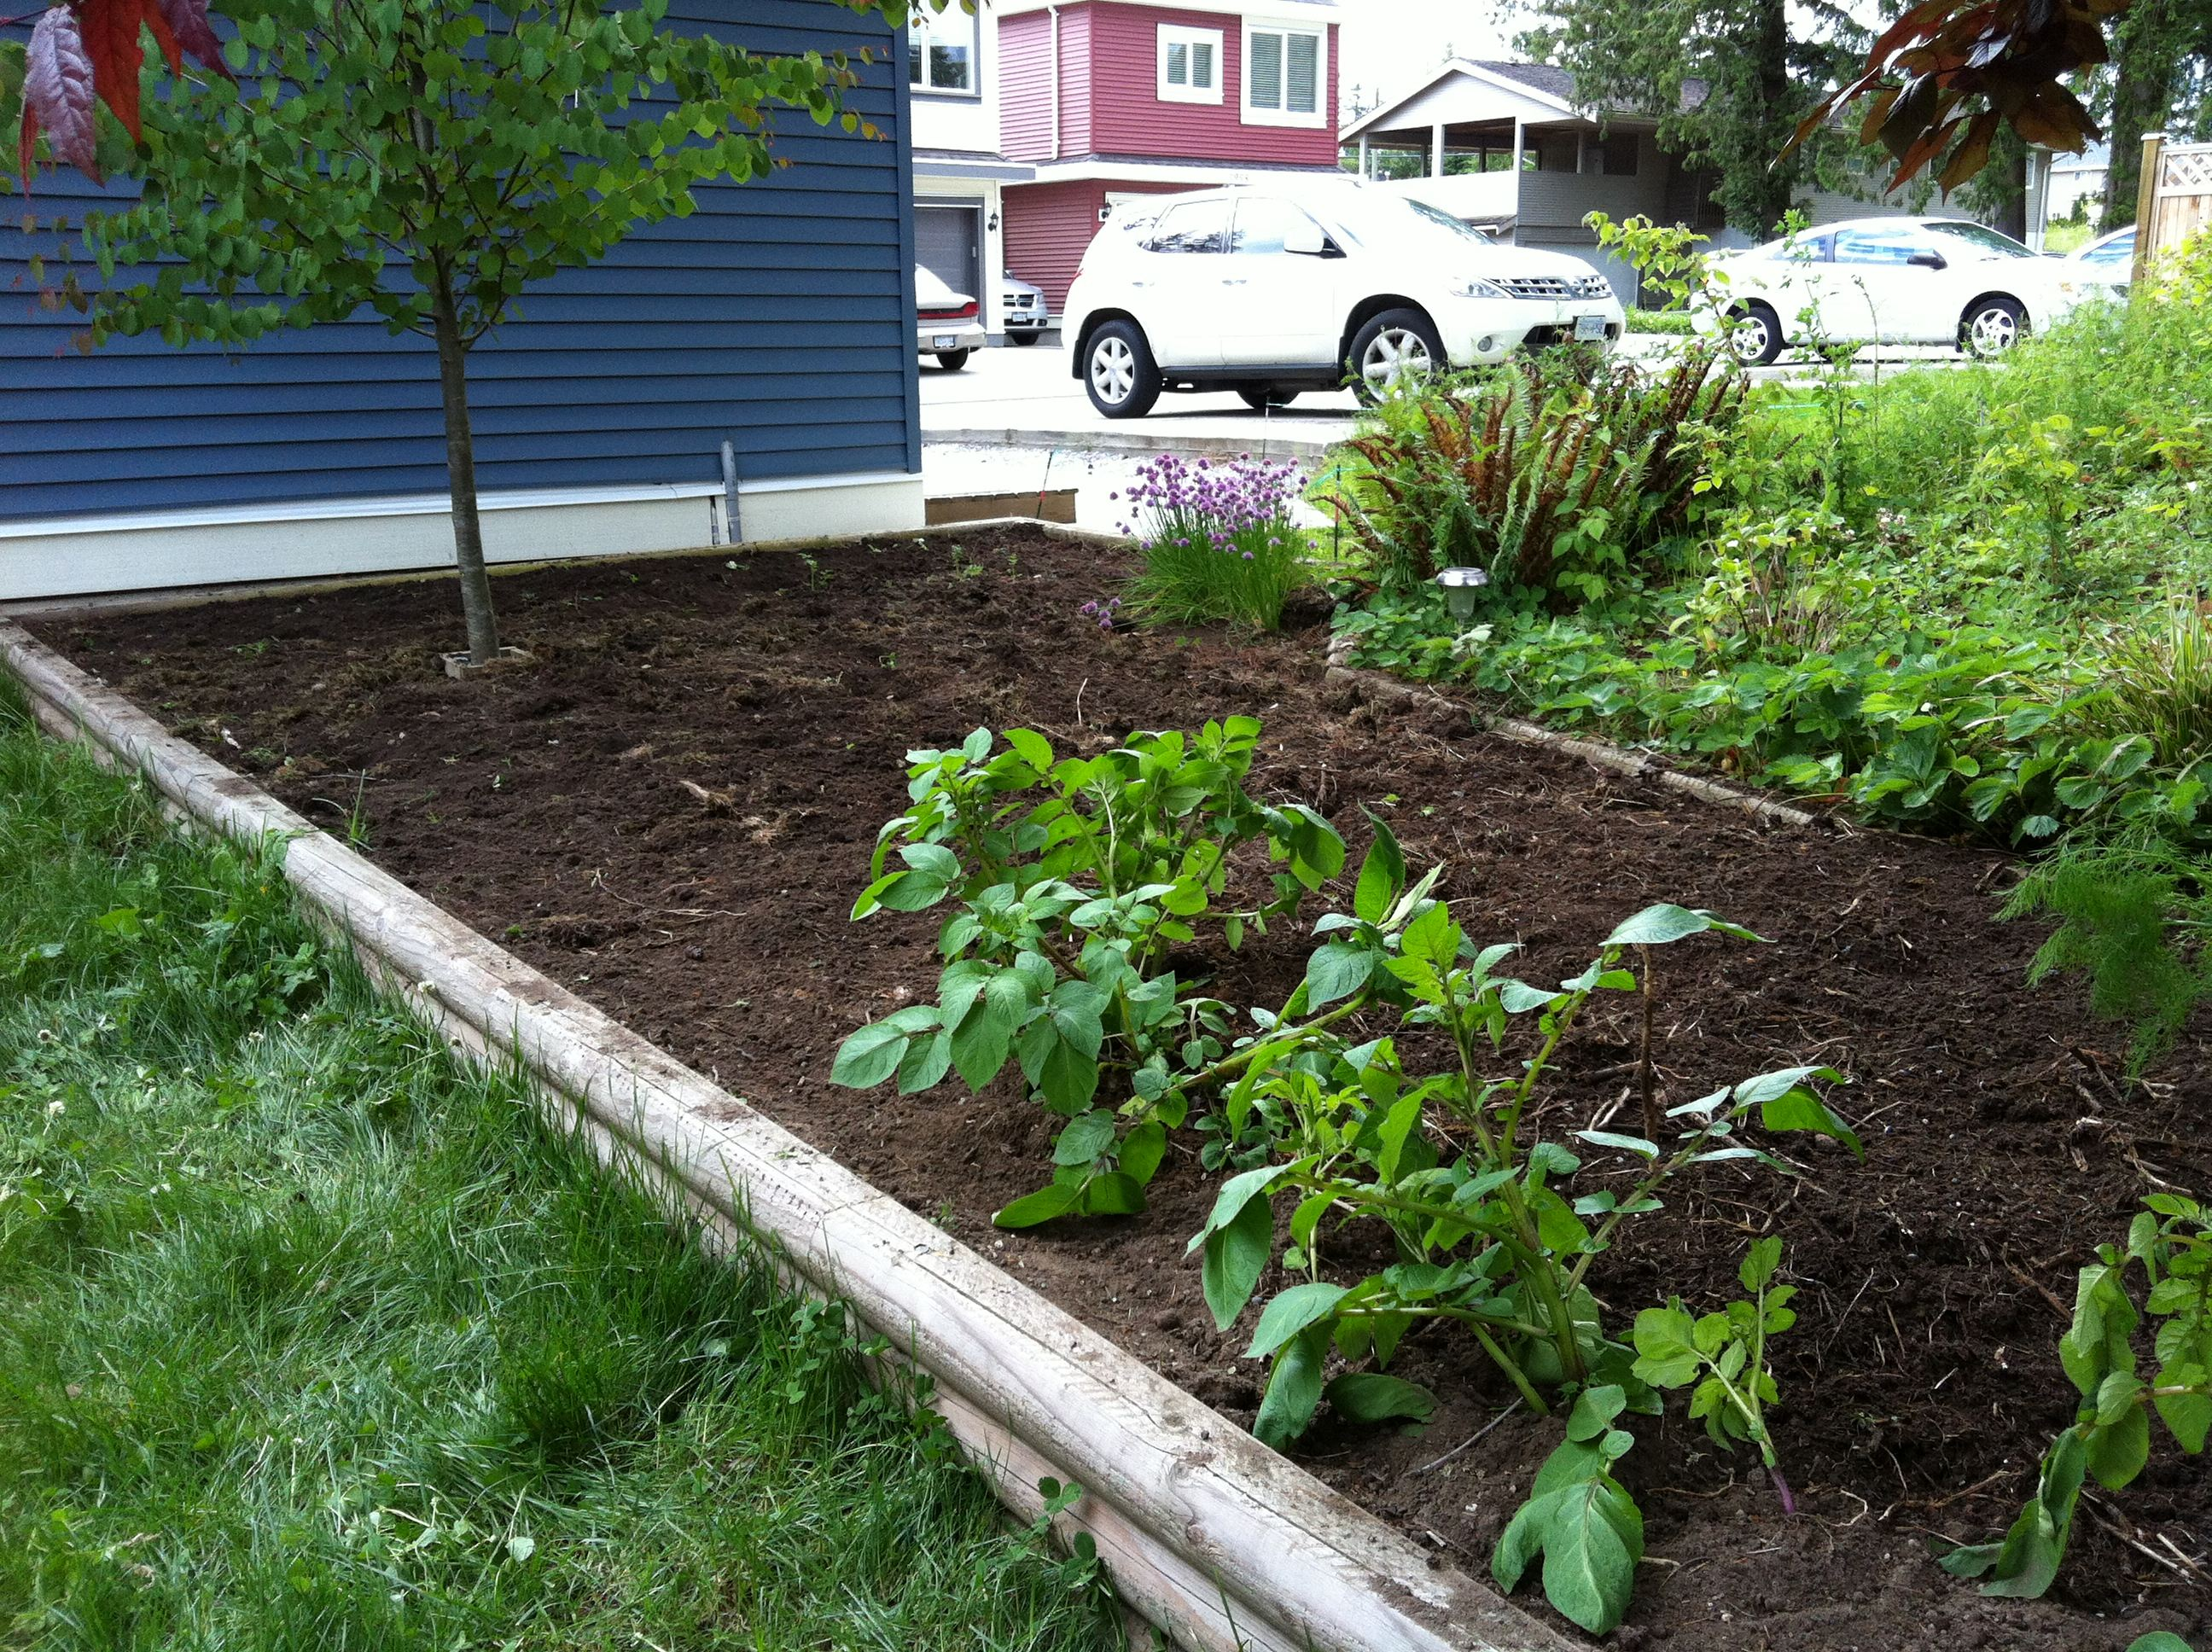 Weeded Backyard Garden